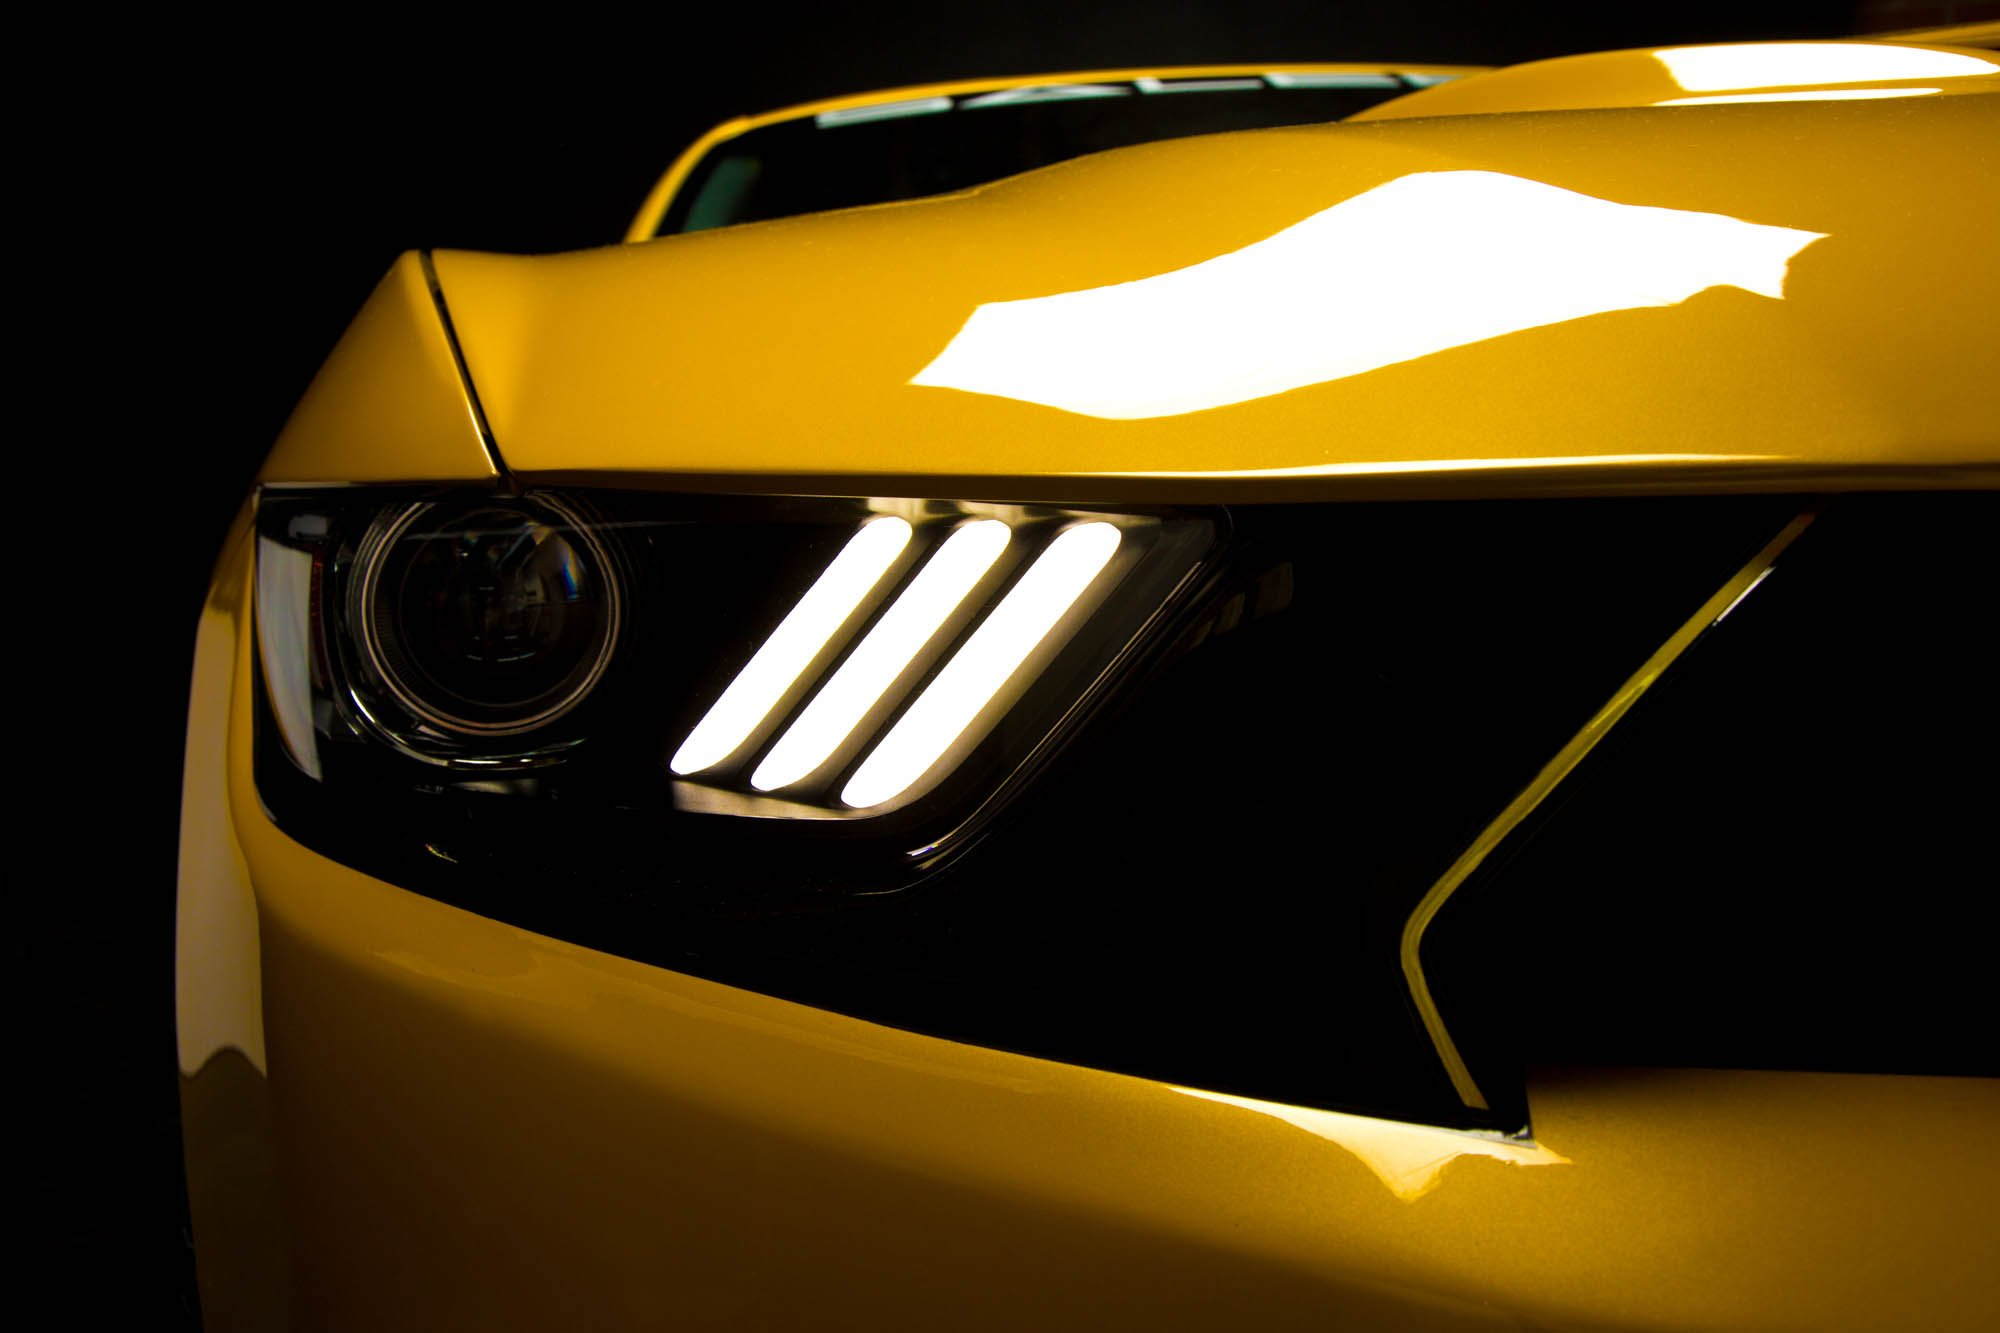 & SALEEN UNVEILS A GAME CHANGER WITH THE 2015 302 BLACK LABEL | Saleen